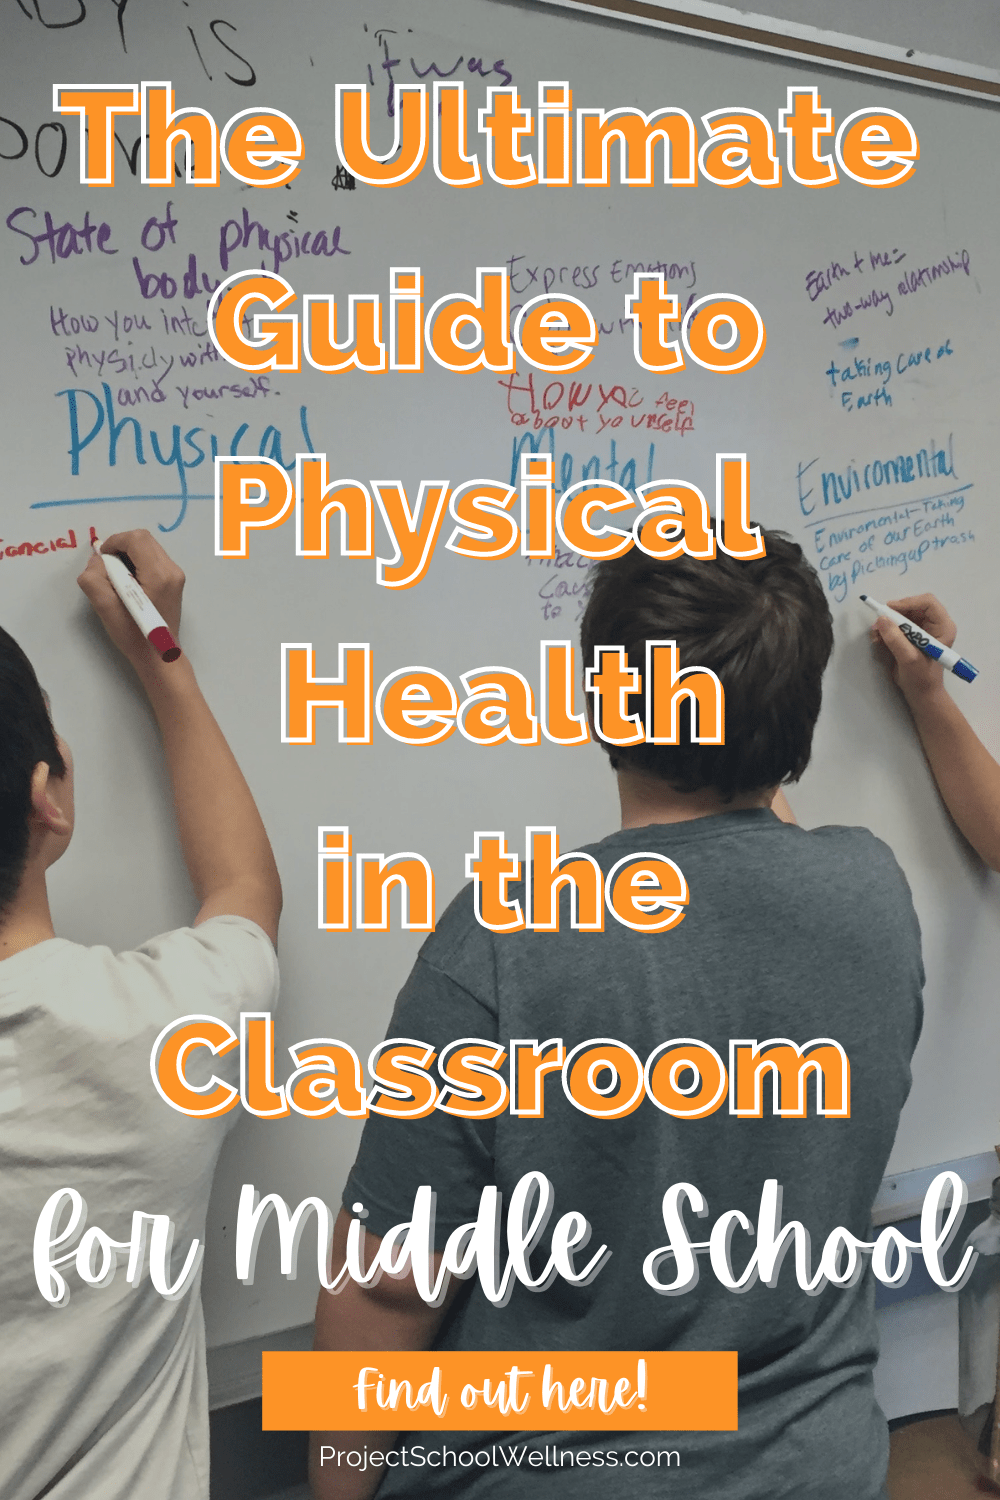 The Ultimate Guide to Physical Health - a project school wellness blog with free lesson plans